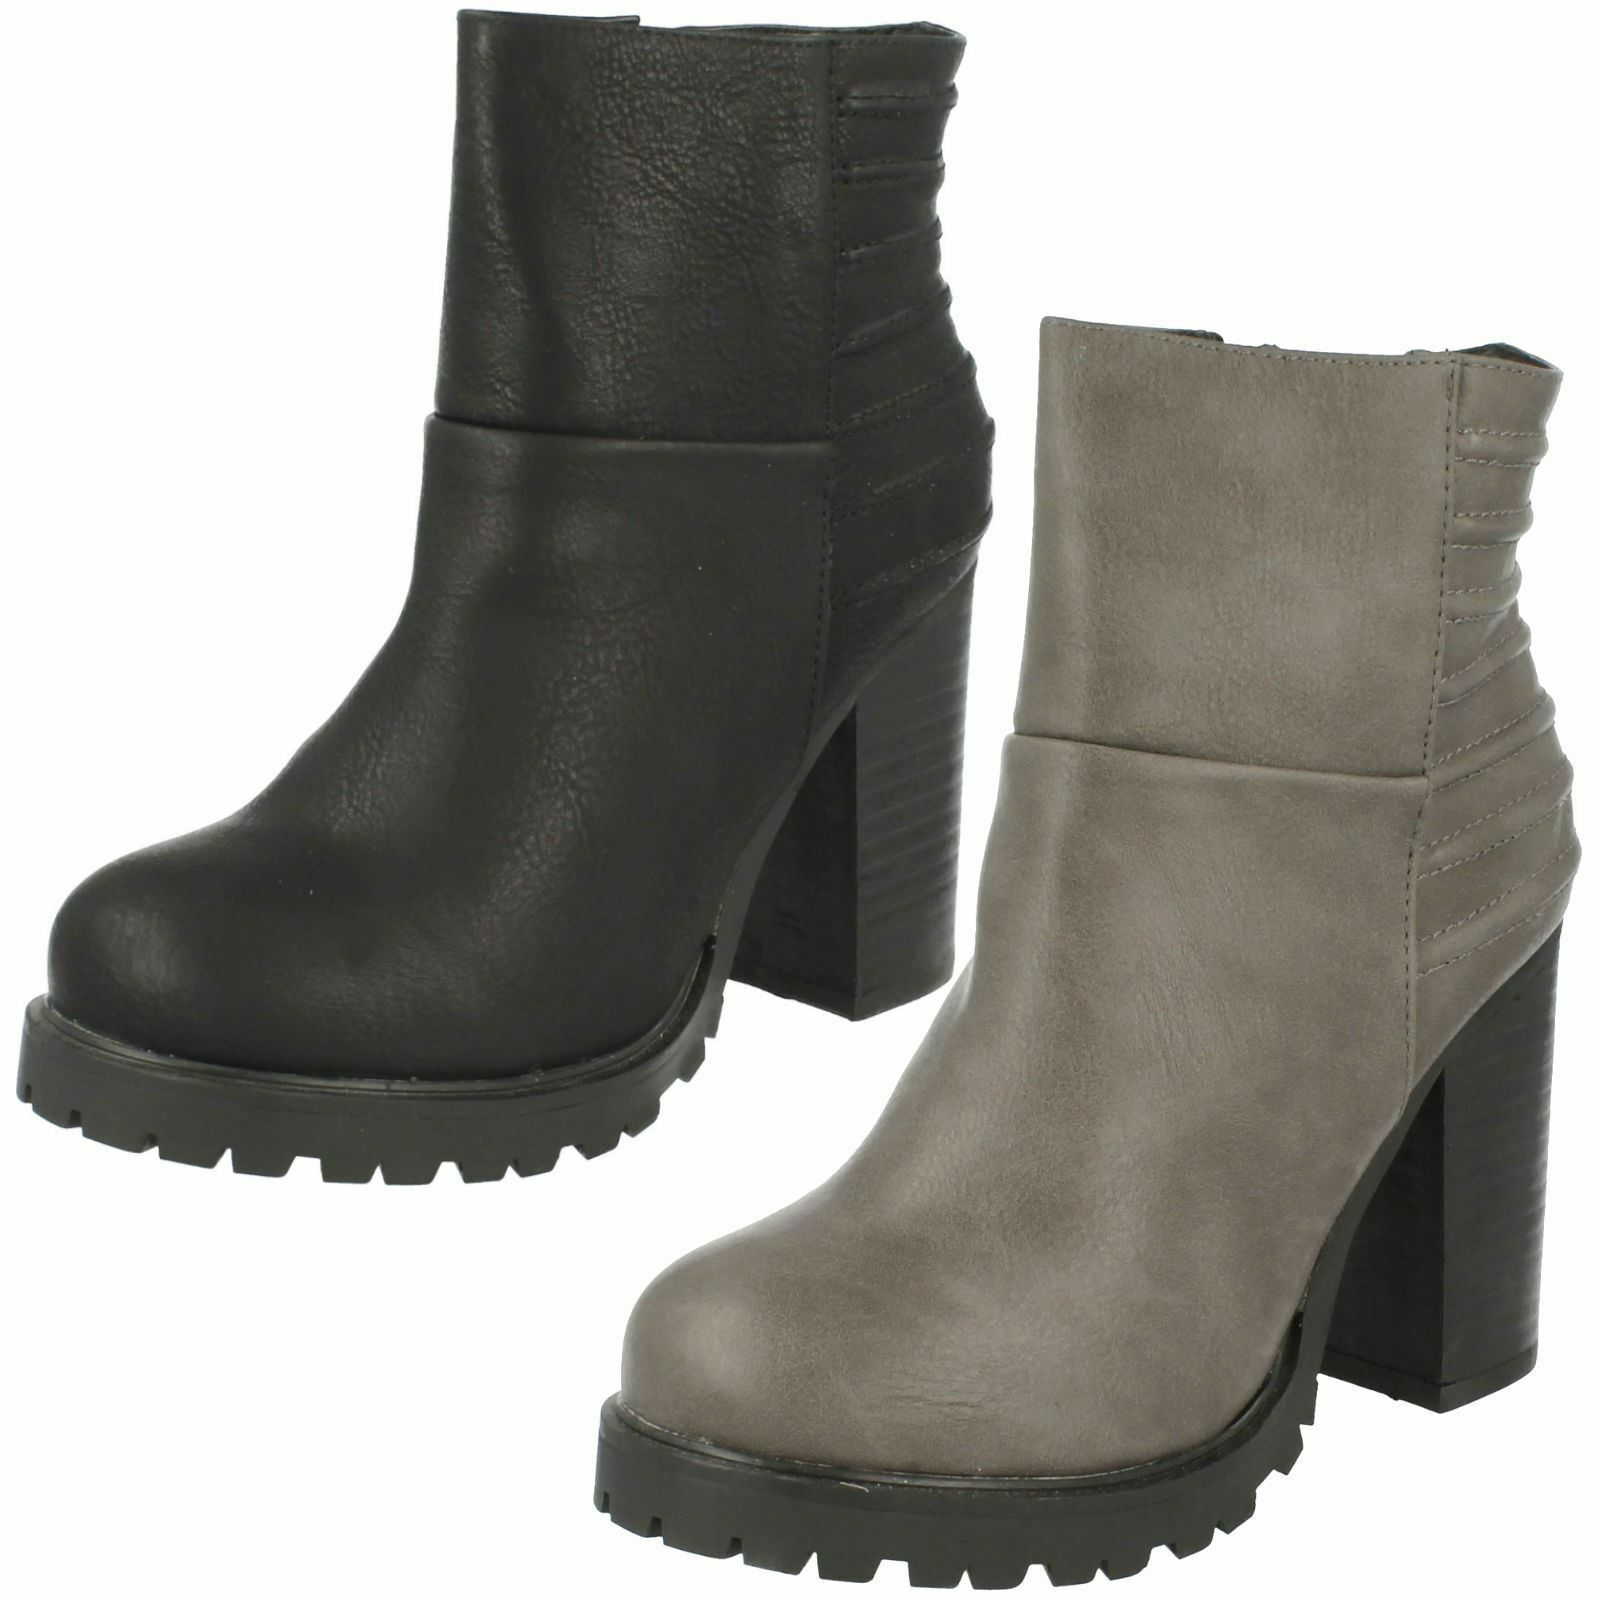 Ladies F50377 synthetic platform ankle boots by Spot On SALE  £19.99